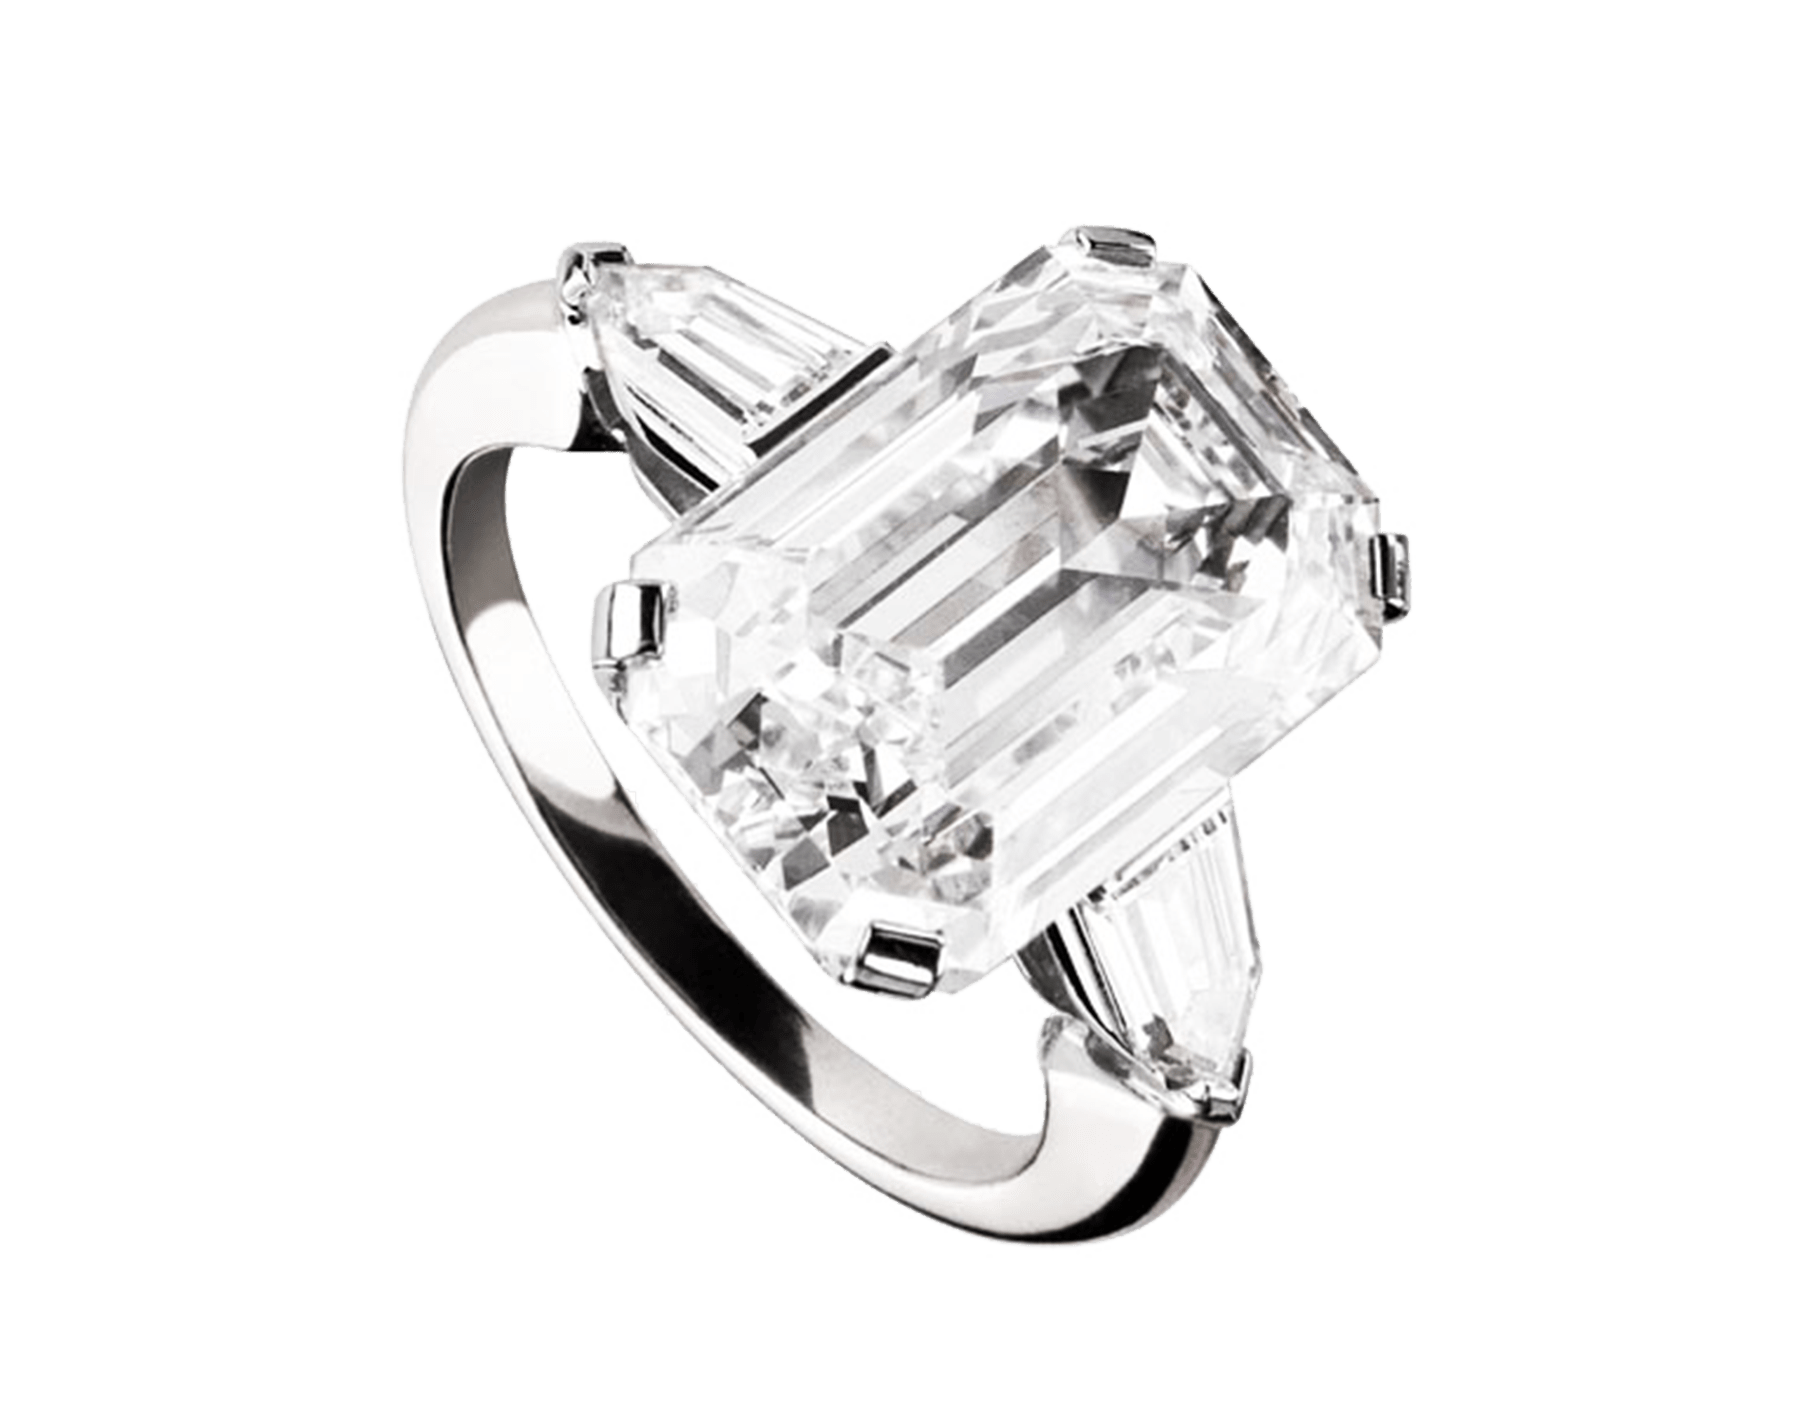 Griffe solitaire ring in platinum with emerald cut diamond and two side diamonds. Available from 1 ct. A classic setting that allows the beauty and the pureness of the solitaire diamond to assert itself 331840 image 1